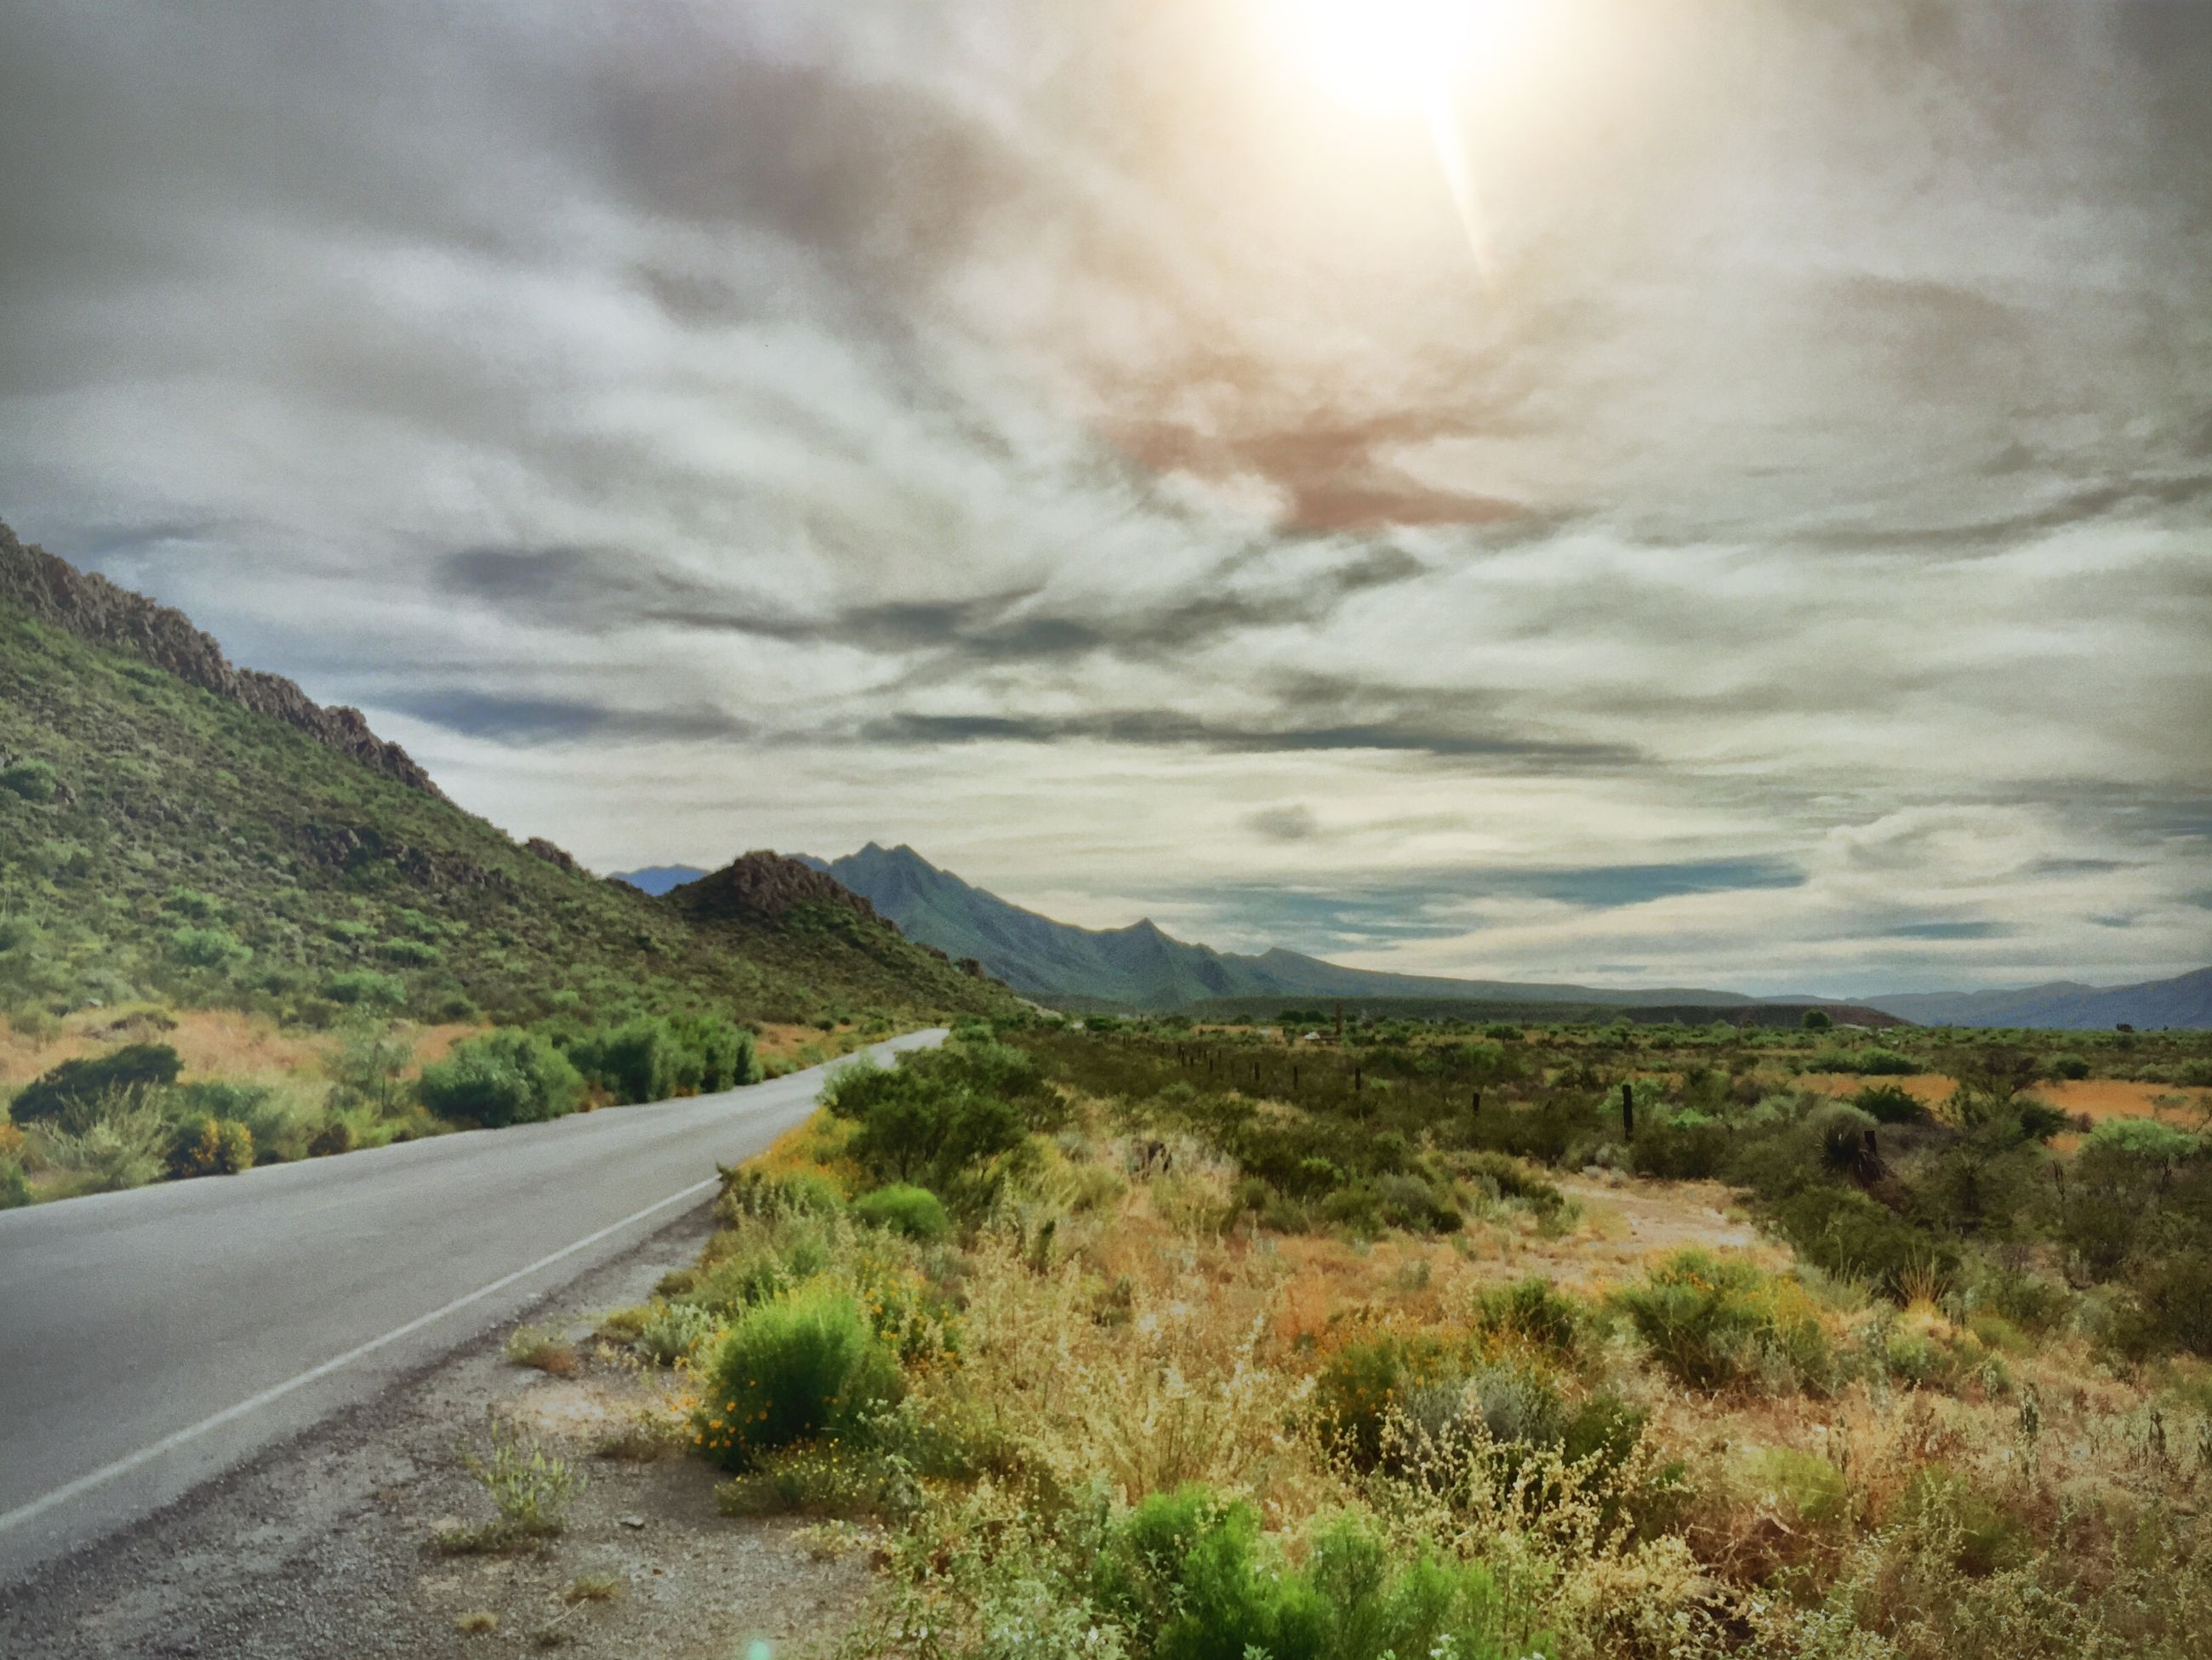 road, the way forward, sky, transportation, mountain, landscape, cloud - sky, tranquil scene, country road, tranquility, scenics, nature, grass, road marking, beauty in nature, cloudy, diminishing perspective, non-urban scene, cloud, empty road